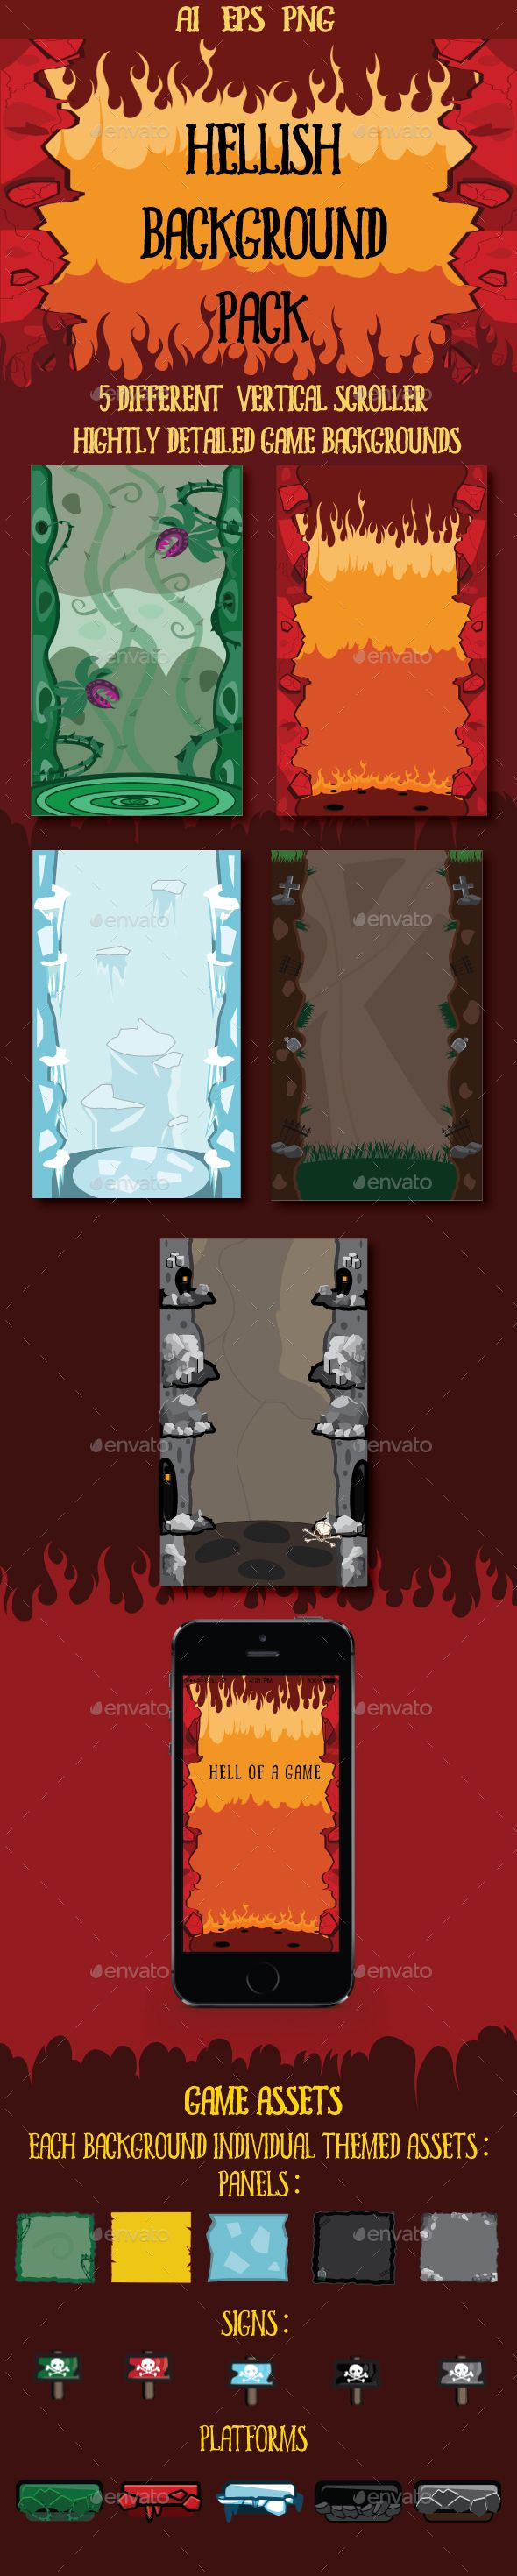 Hellish Game Backgrounds,background, blue, cartoon, cemetery, death, demon, fire, flames, frost, frozen, game, green, grey, hell, hellfire, hellish, horror, ice, jungle, mine, parallax, plants, platform, red, rocks, scary, scroll, scroller, sign, vertical